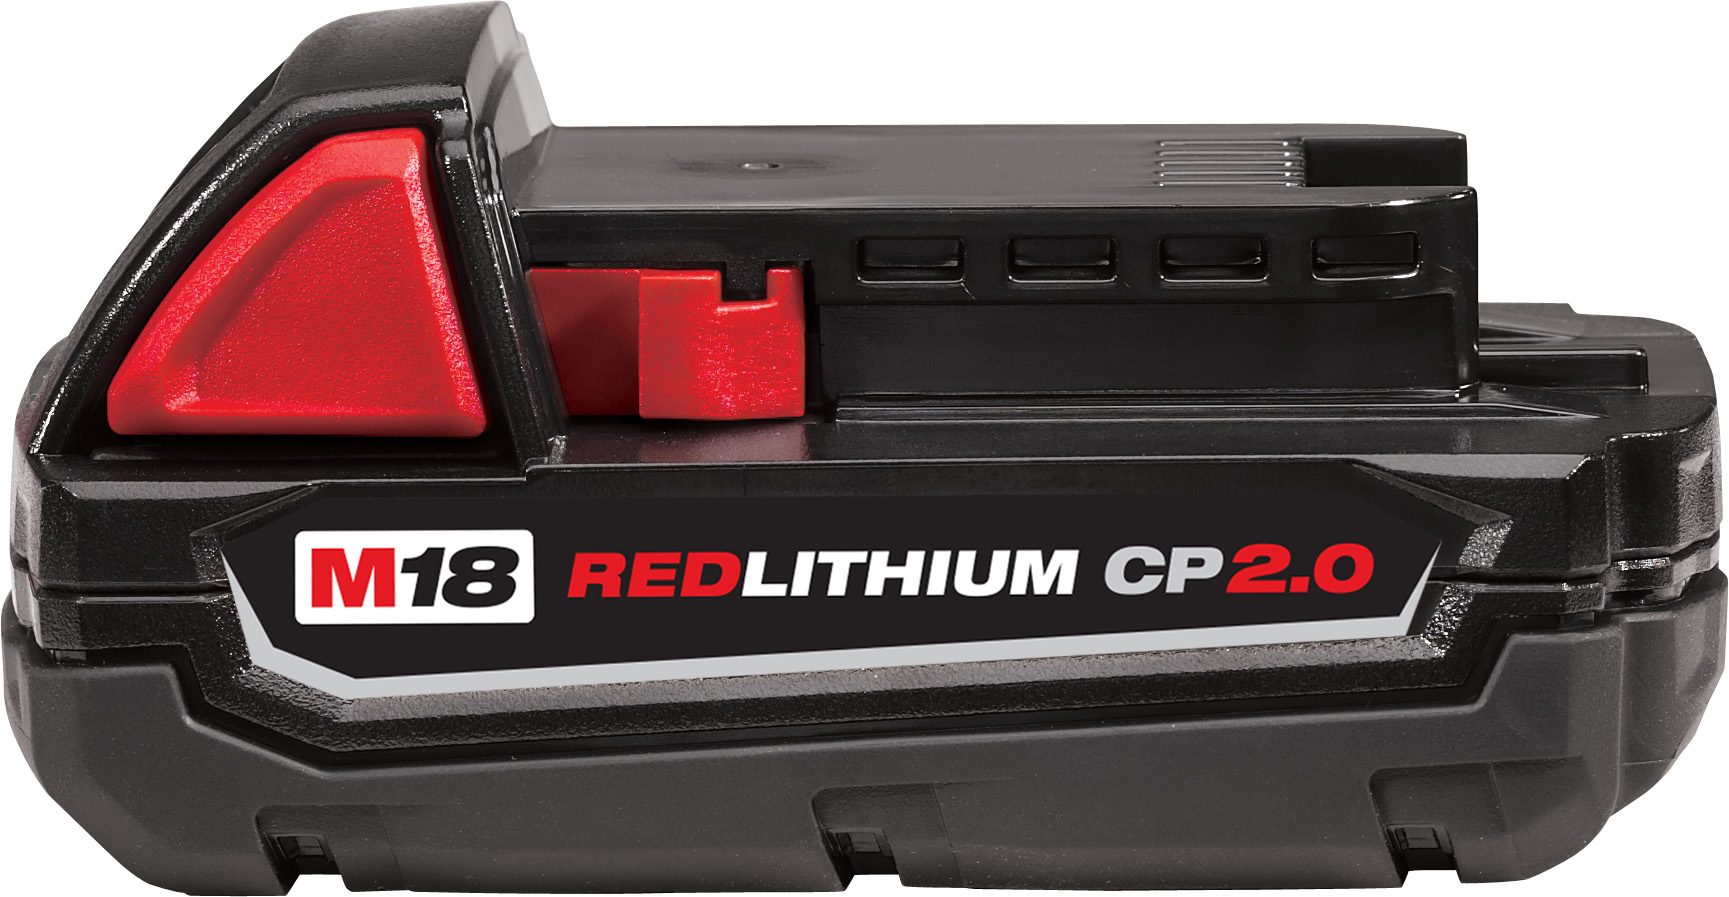 Milwaukee® M18™ REDLITHIUM™ 48-11-1820 Compact Rechargeable Cordless Battery Pack, 2 Ah Lithium-Ion Battery, 18 VDC Charge, For Use With Milwaukee® M18™ Cordless Power Tool